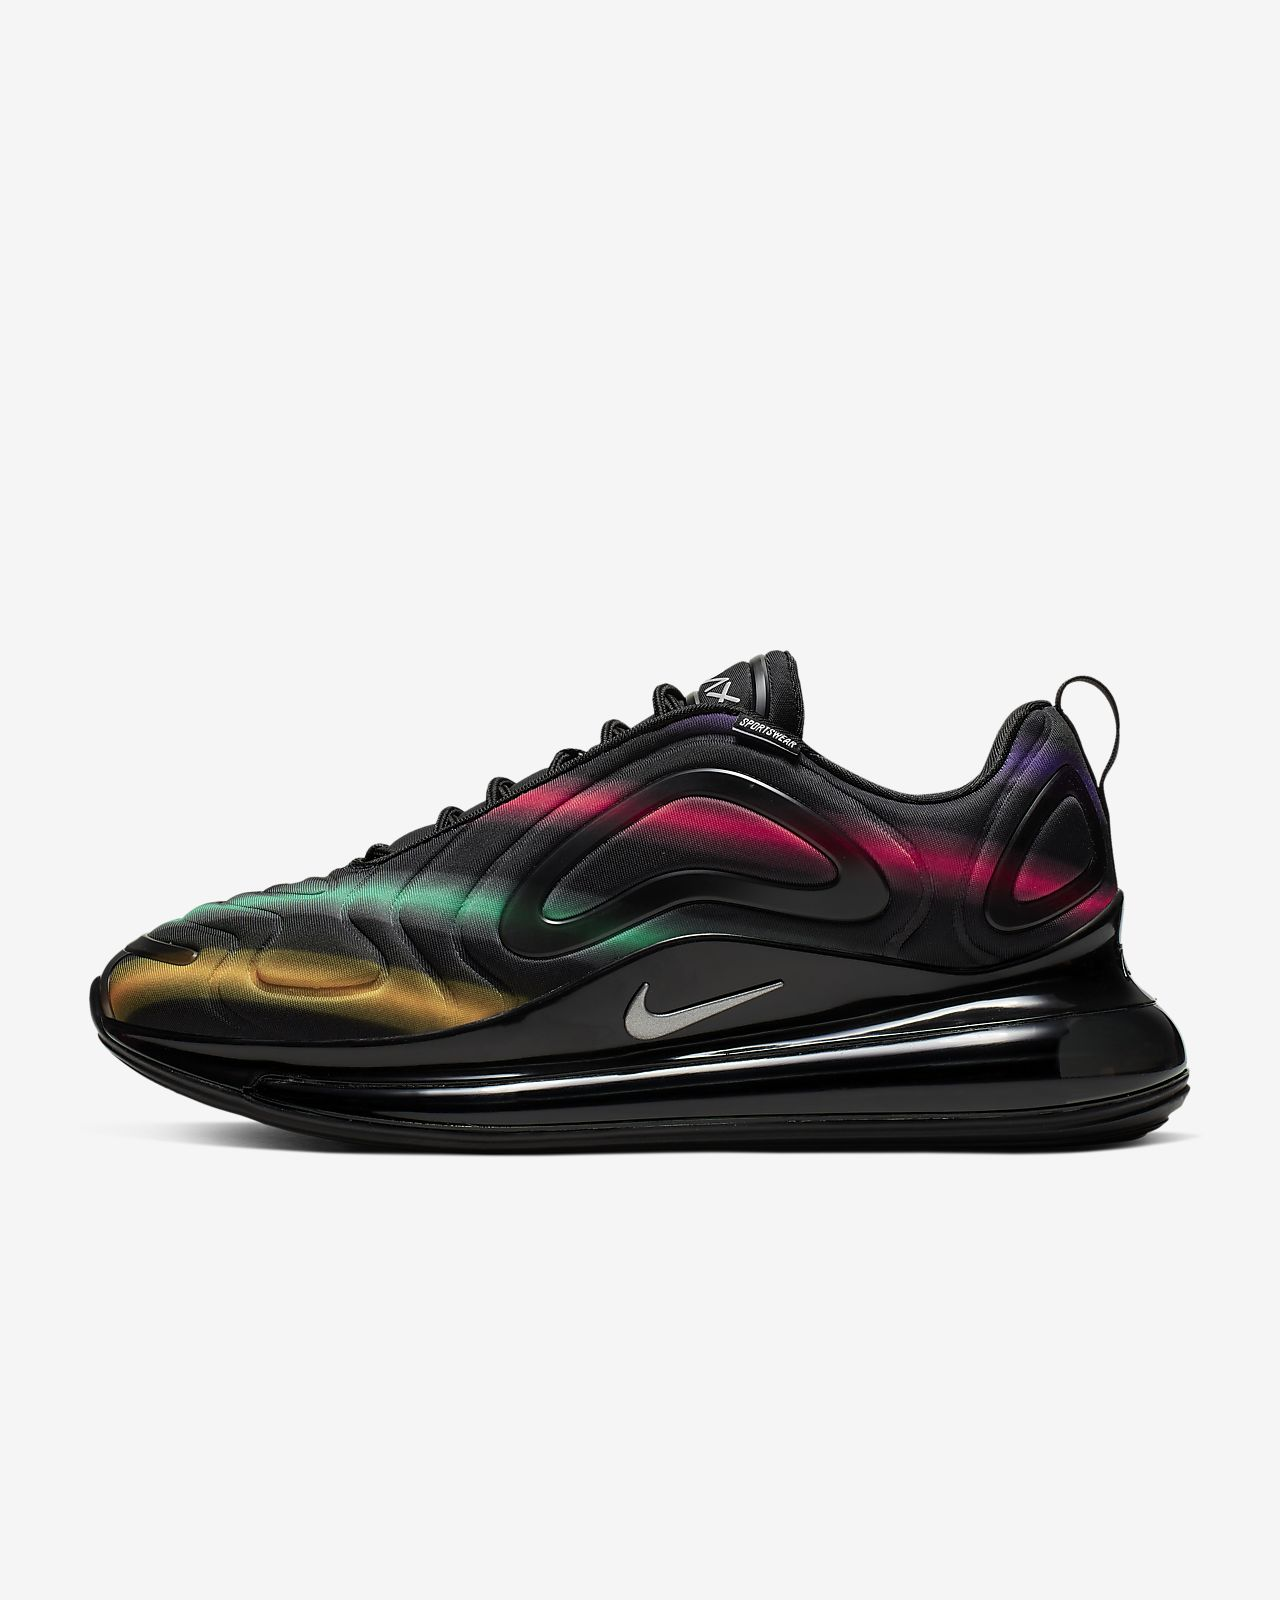 100% original Air Max 720 Max 720 sole official starting new release 2